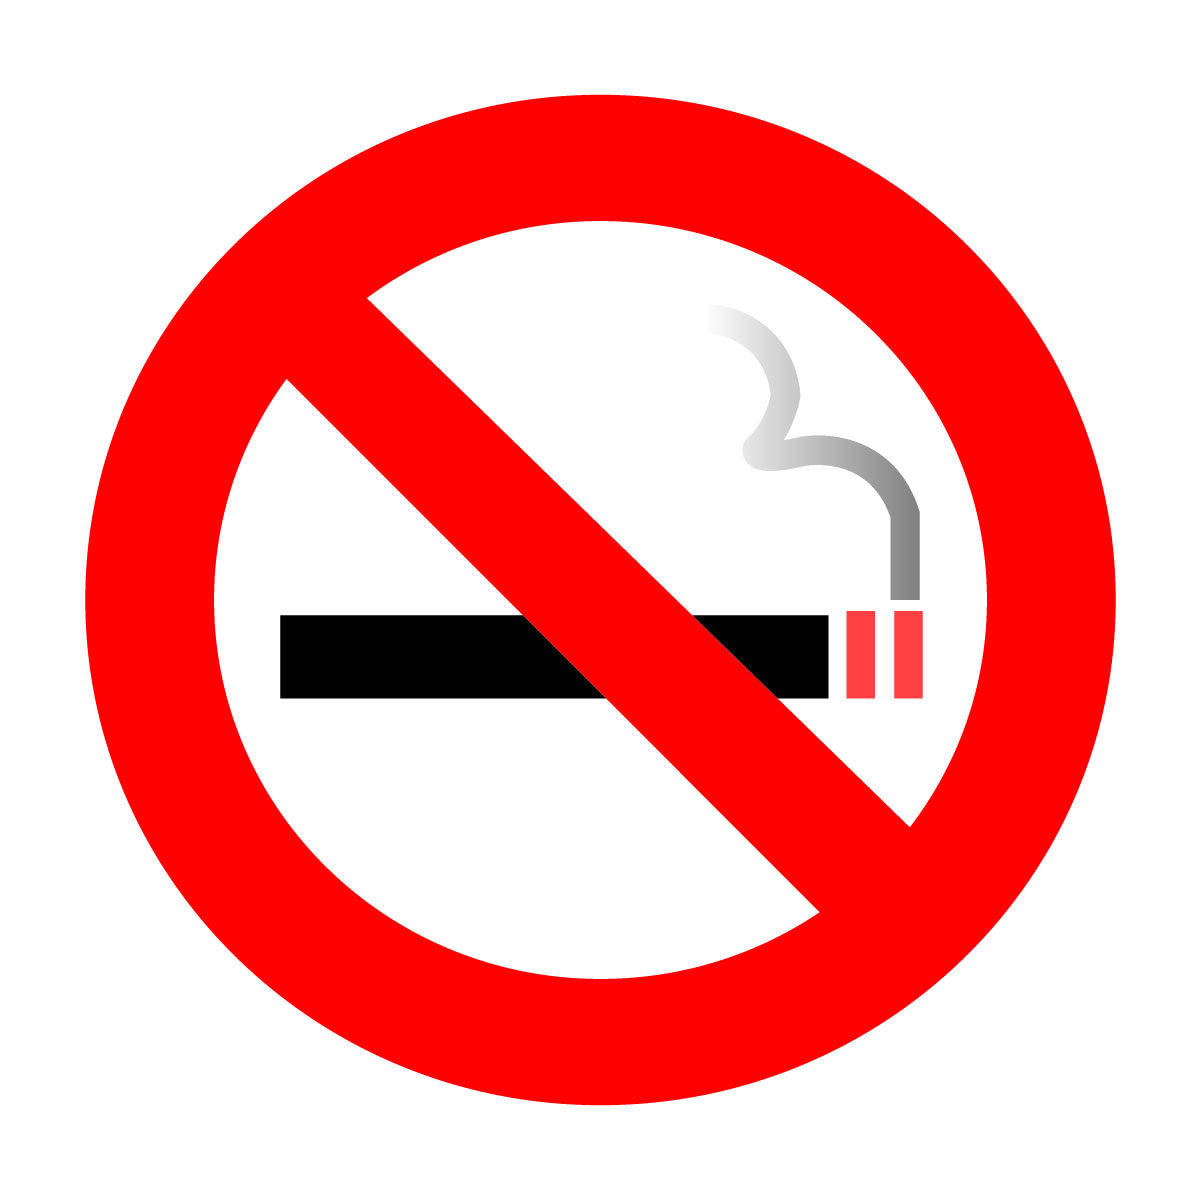 Non-smoking Please: Attorney Generals Seek Ban | eMerchantBroker.